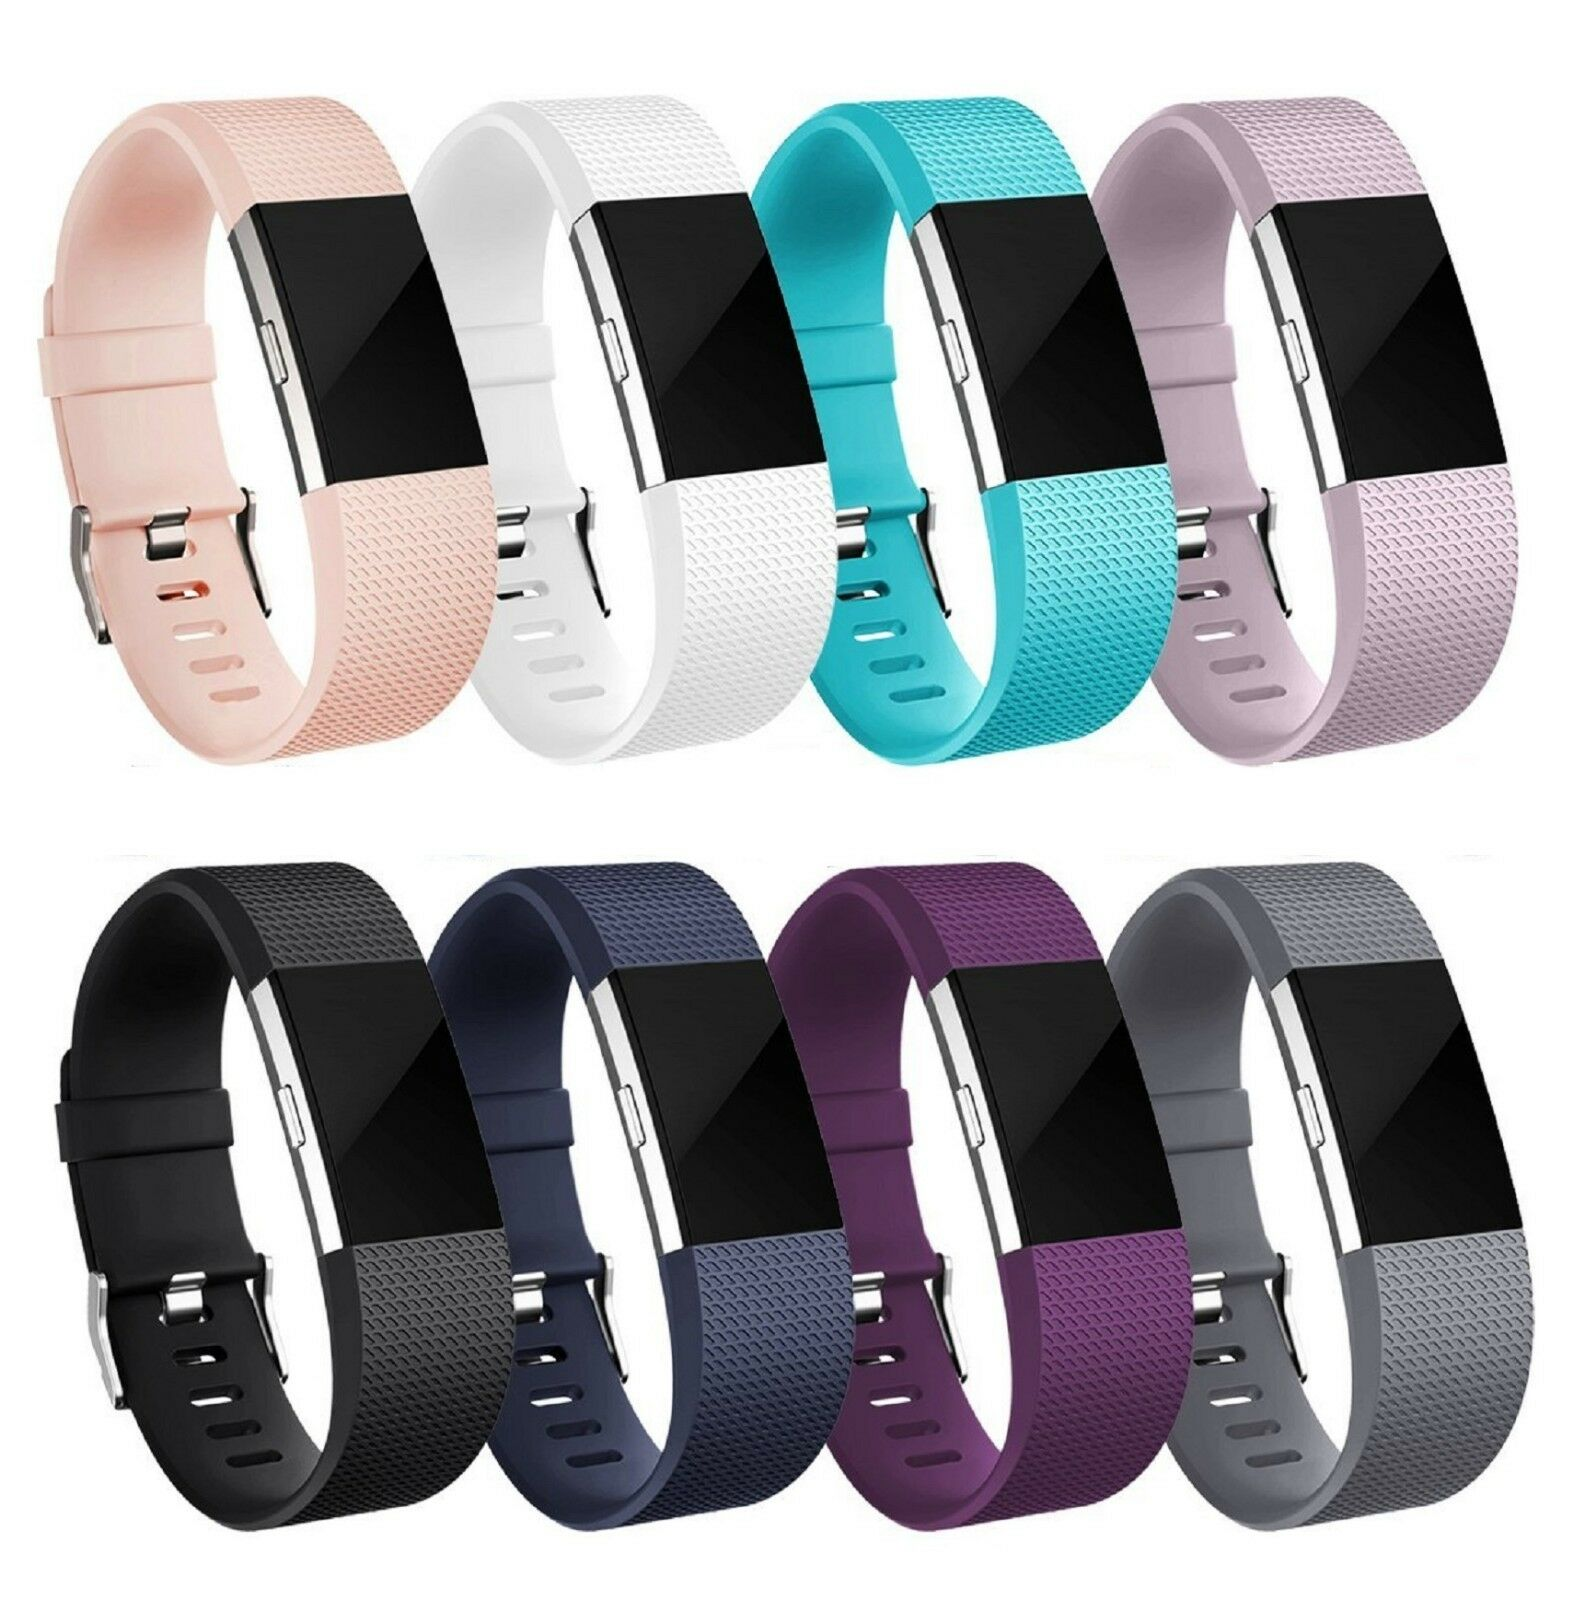 Купить Fitbit Hot Charge 2 Band Silicone Fitness Wristband Heart Rate Watch Band - For Fitbit Charge 2 /  2 HR Replacement Silicone Bracelet Watch Band